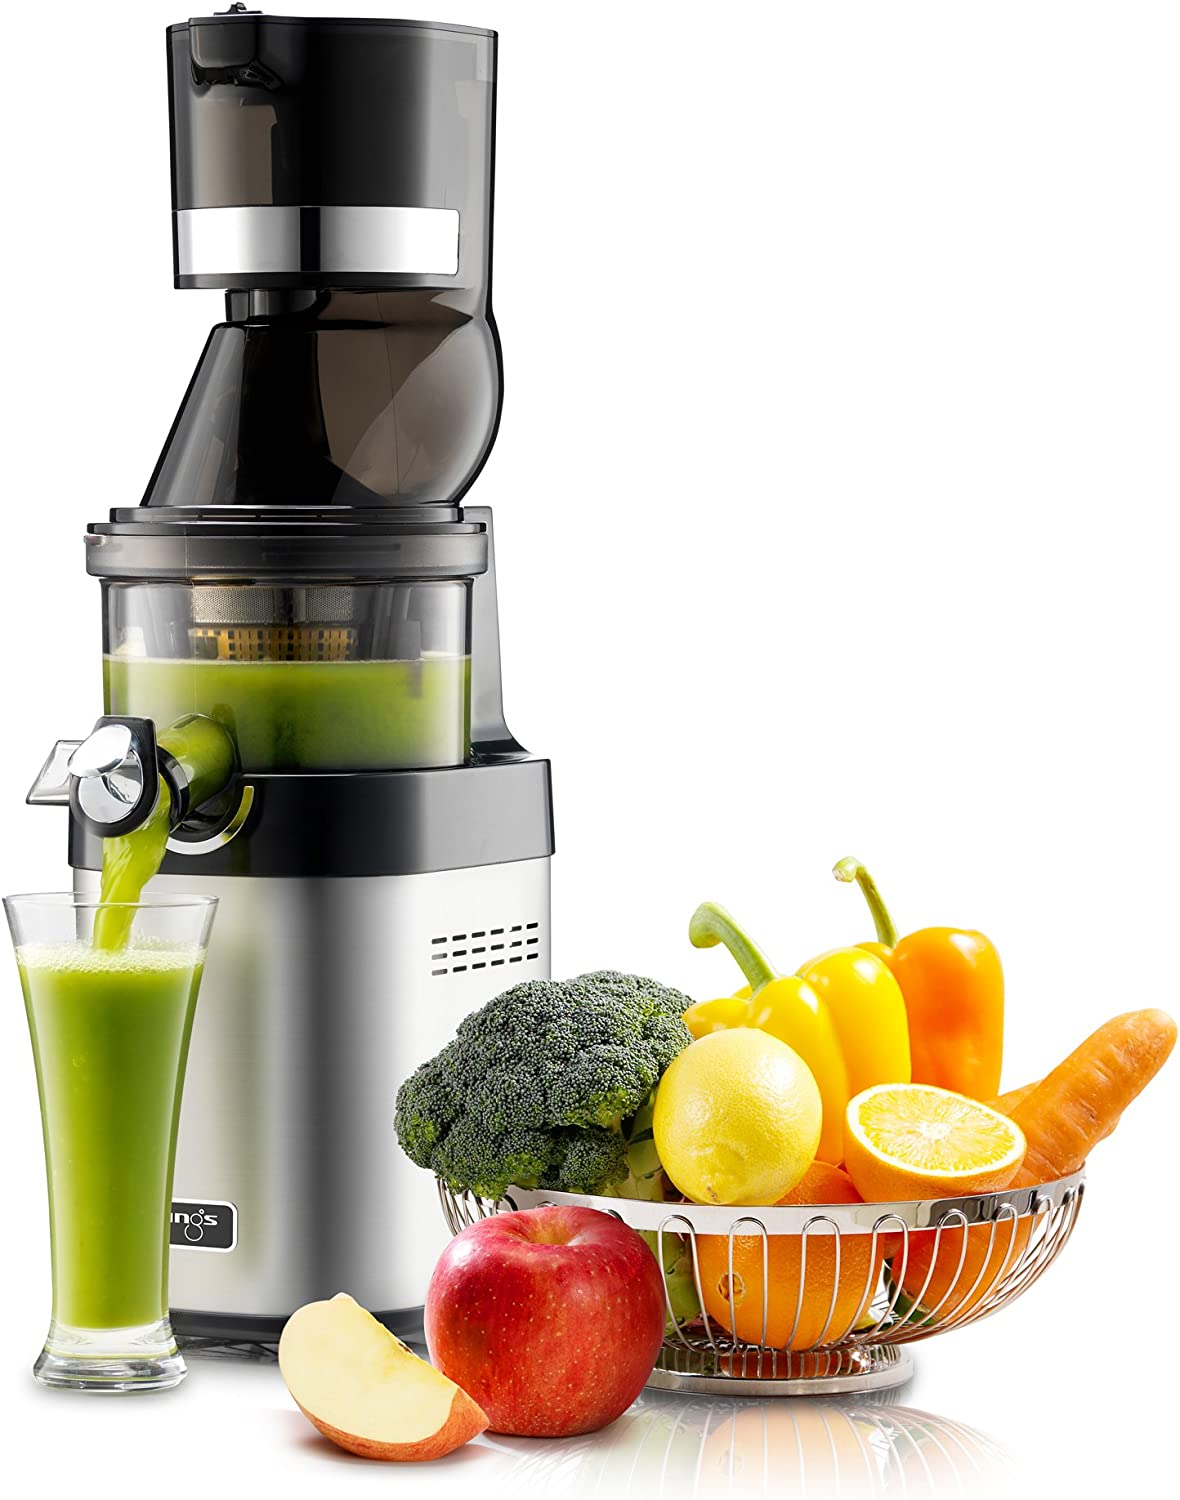 Difference Between A Slow Juicer And Juice Extractor